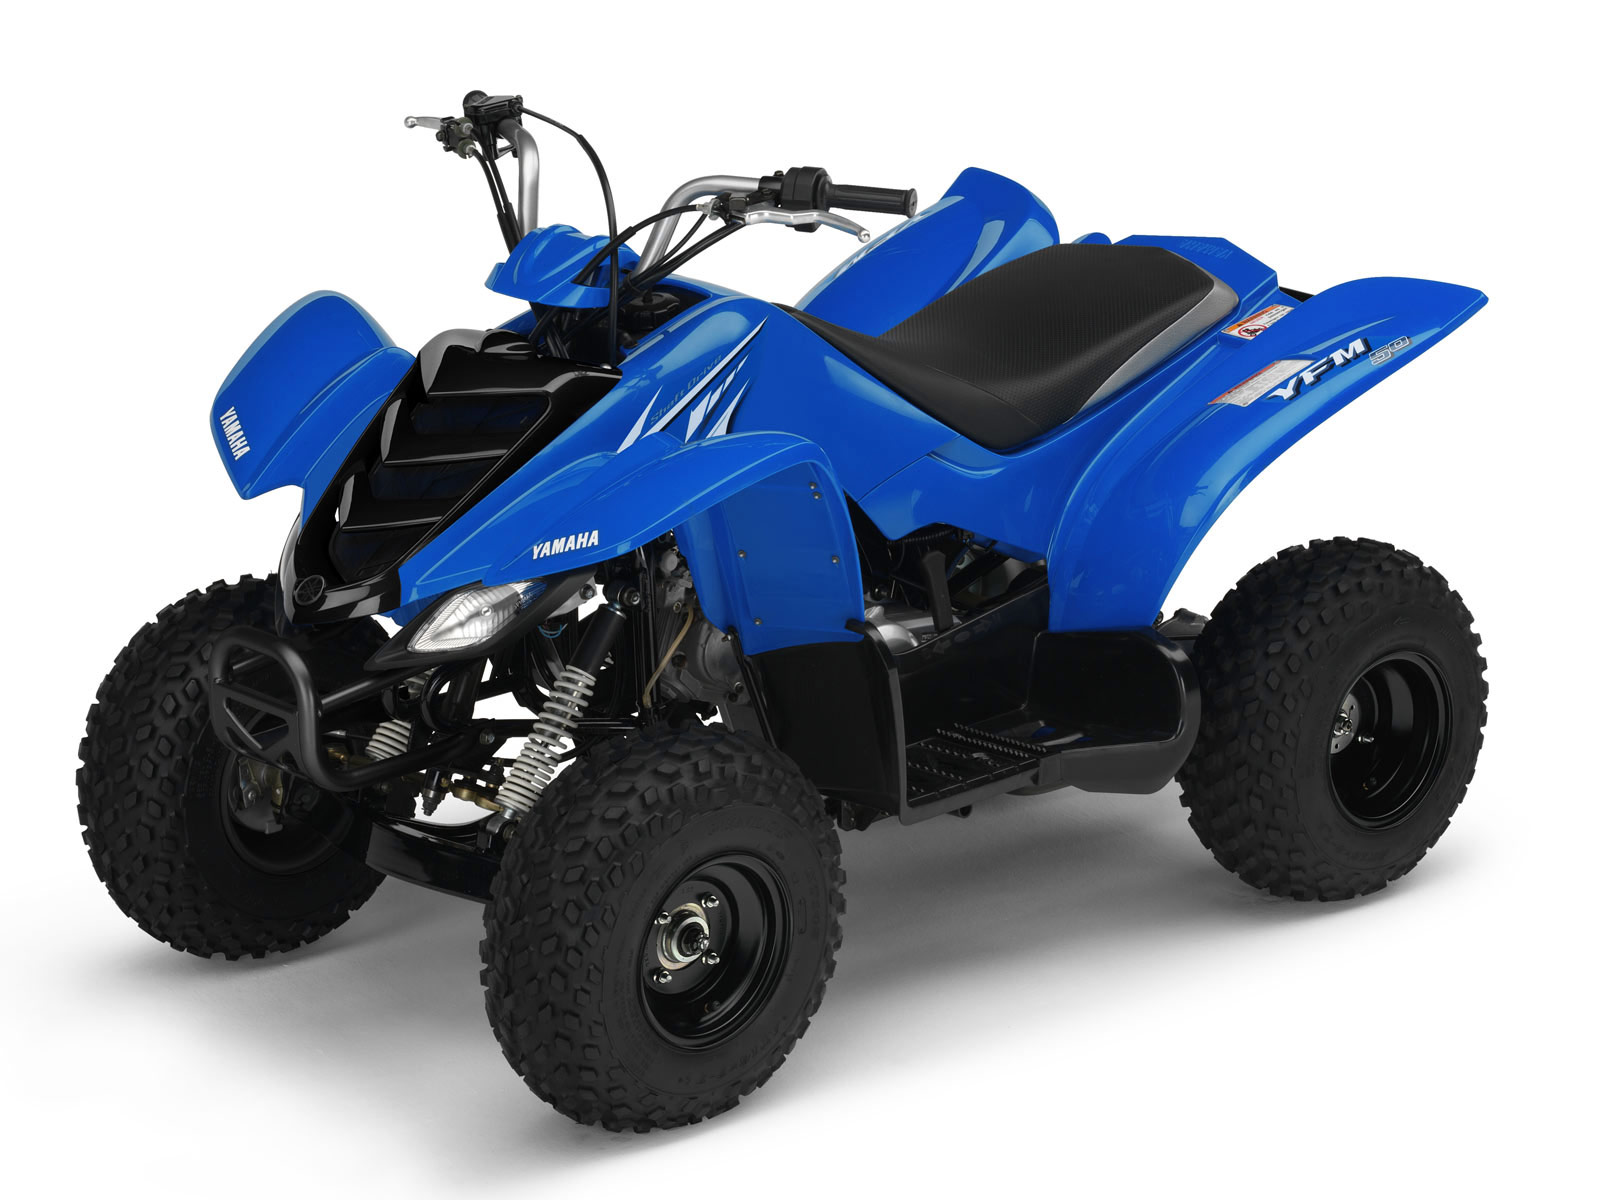 2008 yamaha yfm50 atv pictures review specifications. Black Bedroom Furniture Sets. Home Design Ideas